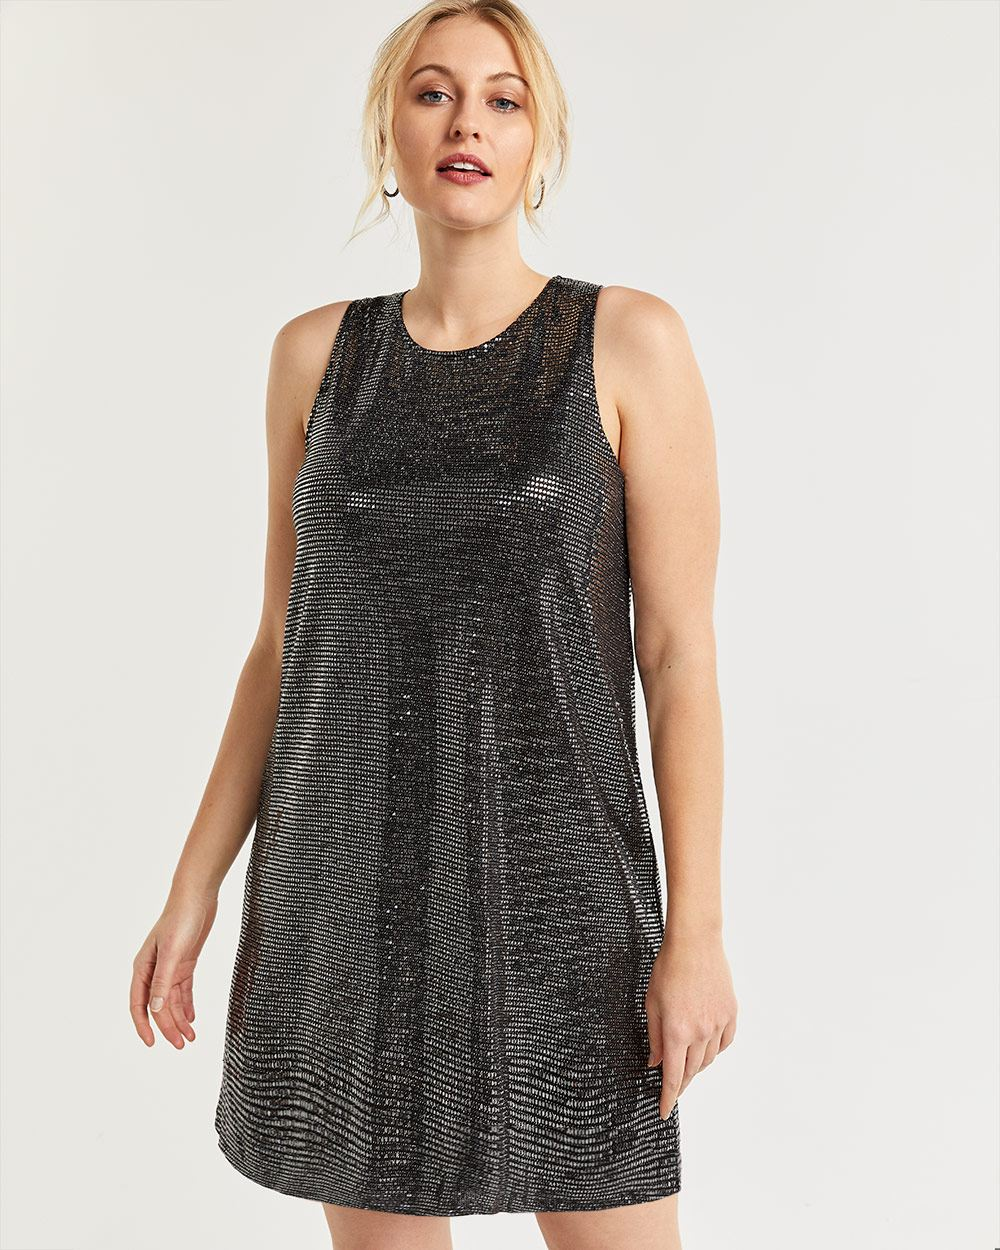 Silver Sequin Sleeveless Shift Dress